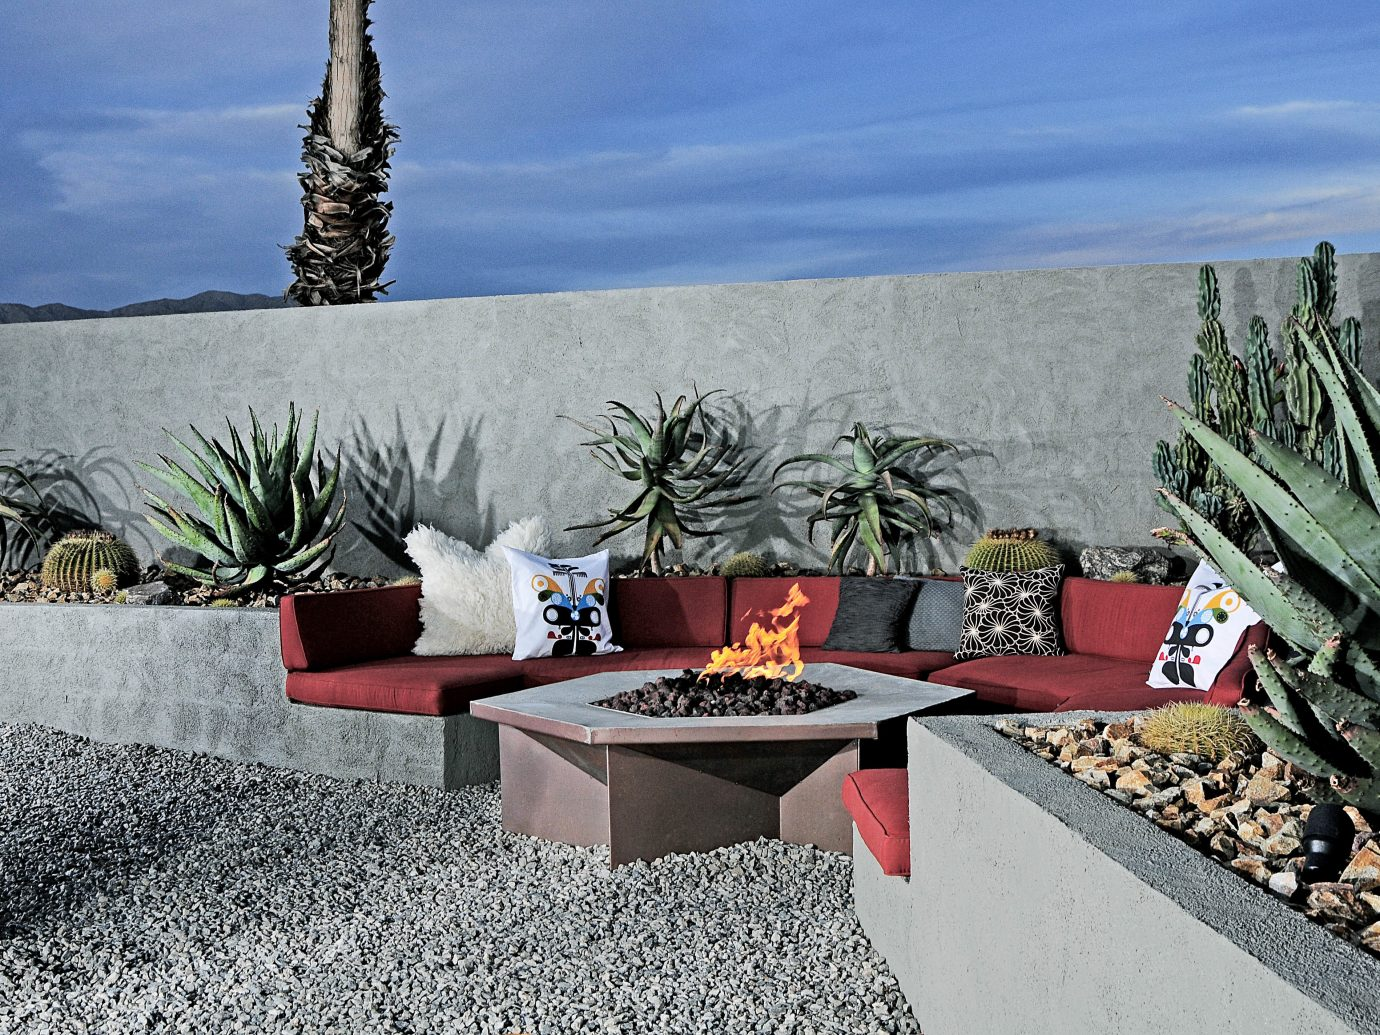 Hip Hotels Living Lounge Luxury Modern Style + Design Trip Ideas outdoor wall plant flower estate Garden stone agave